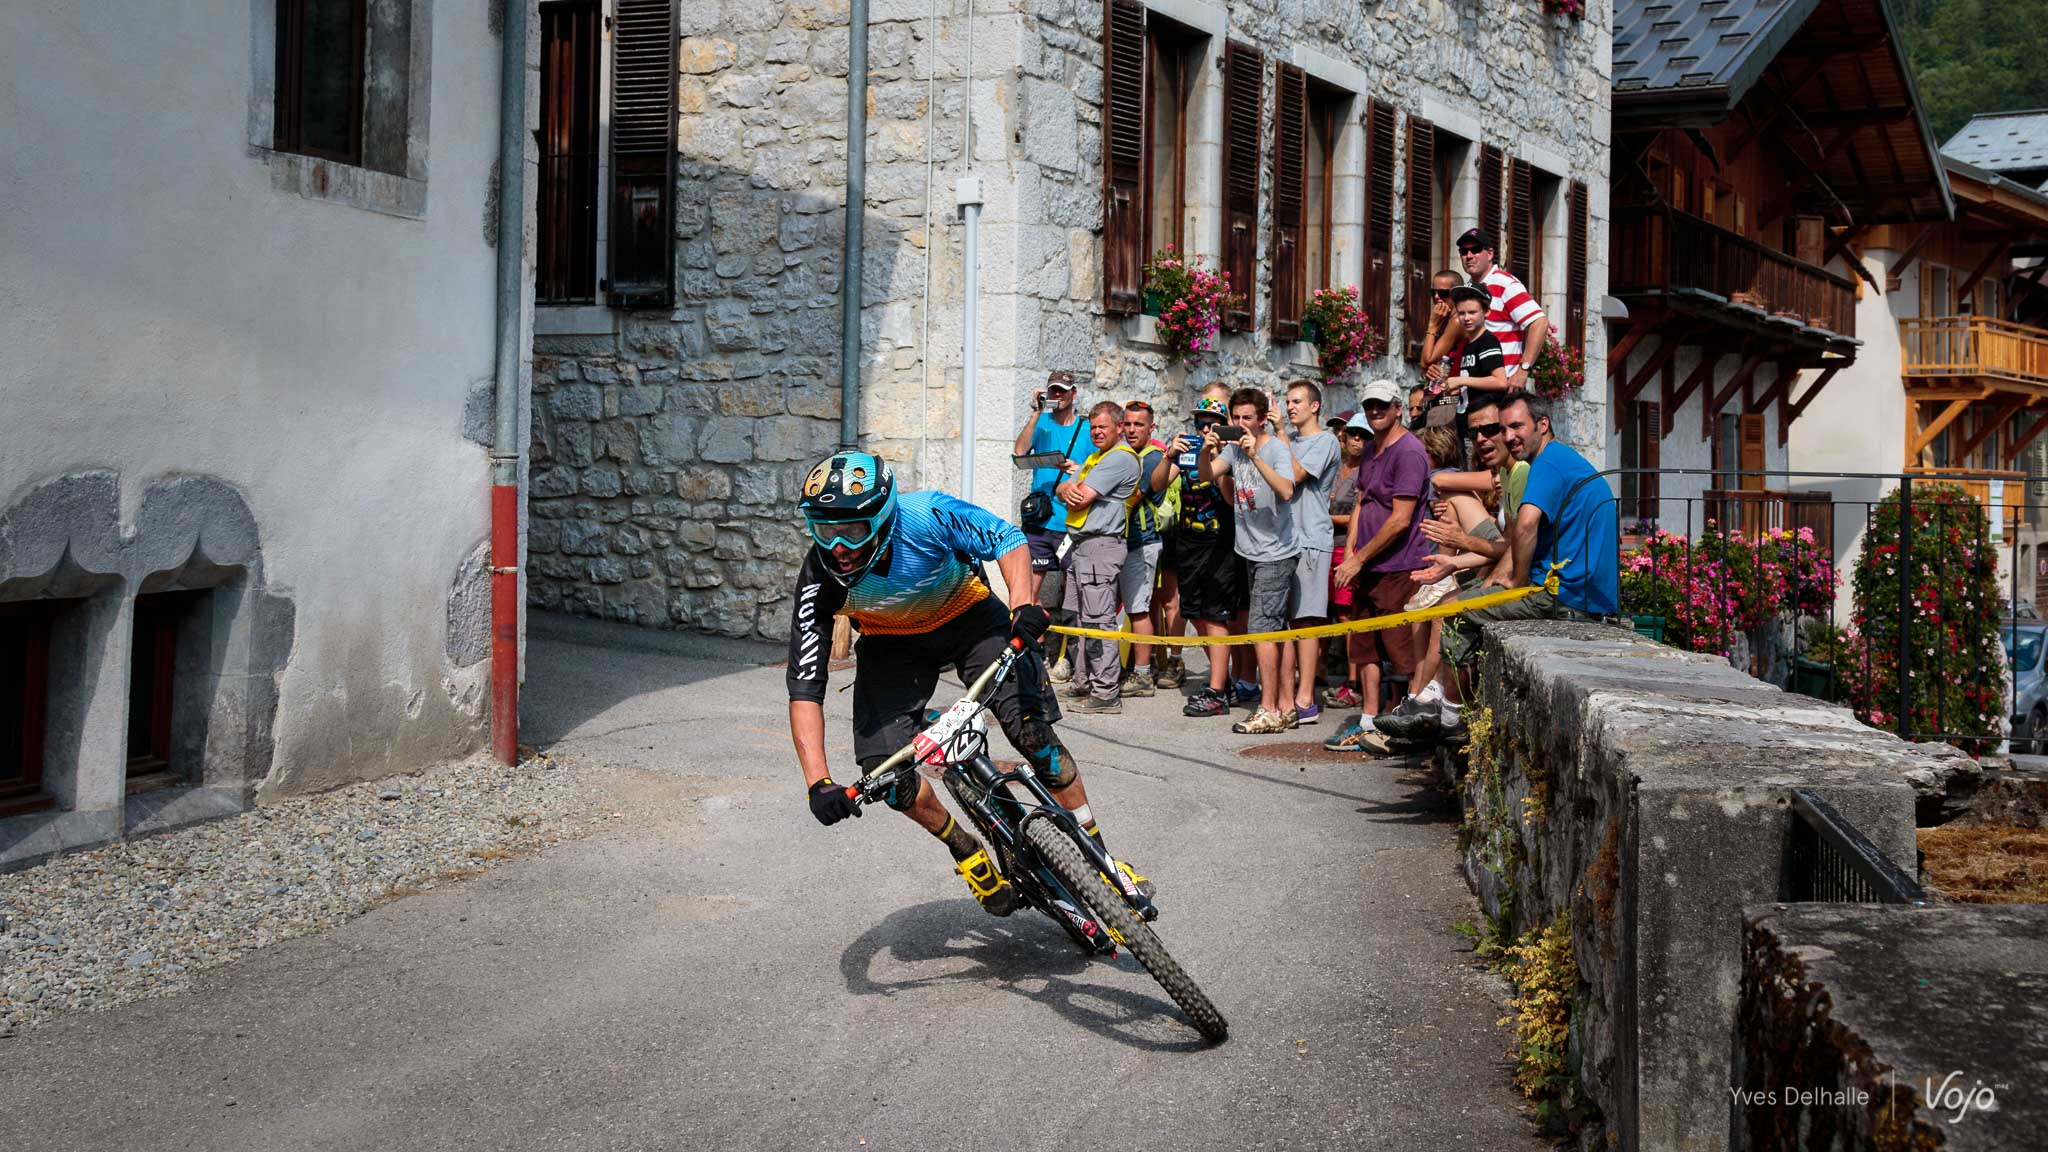 Enduro_World-Series_Samoens_Copyright_Vojomag_YDelhalle-45